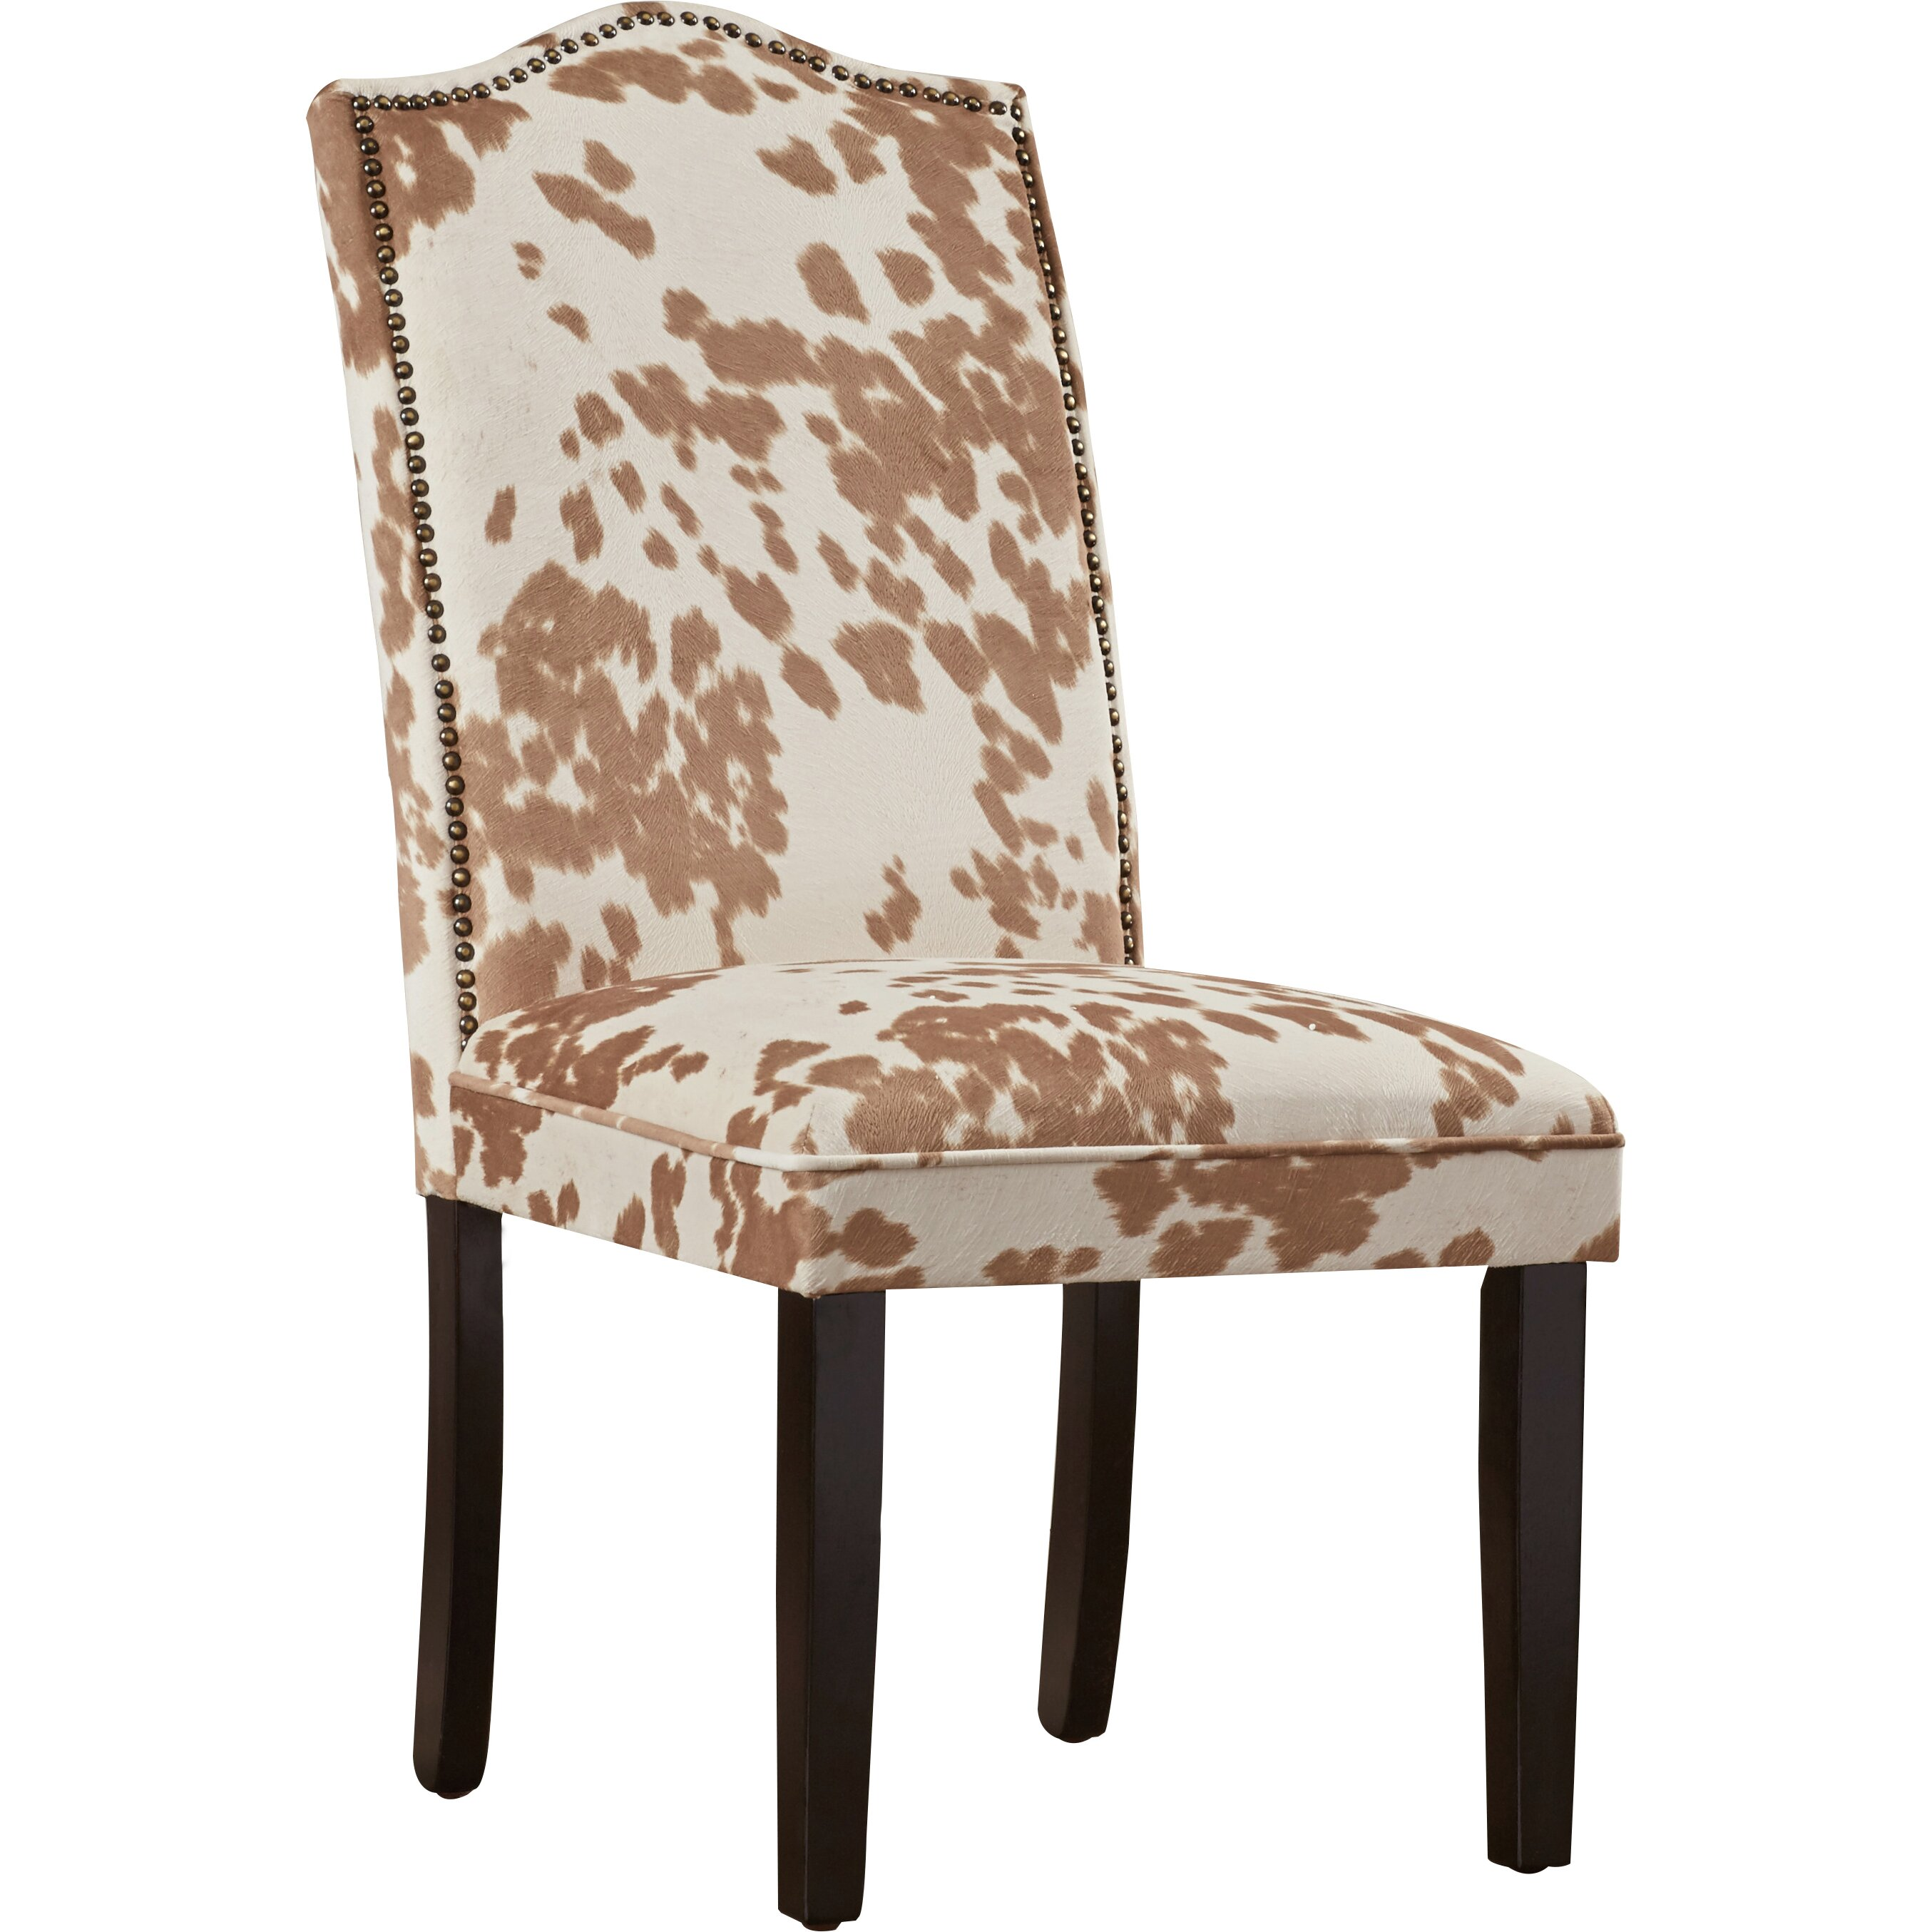 Trent austin design healdsburg nailhead parsons chair for What is a parsons chair style